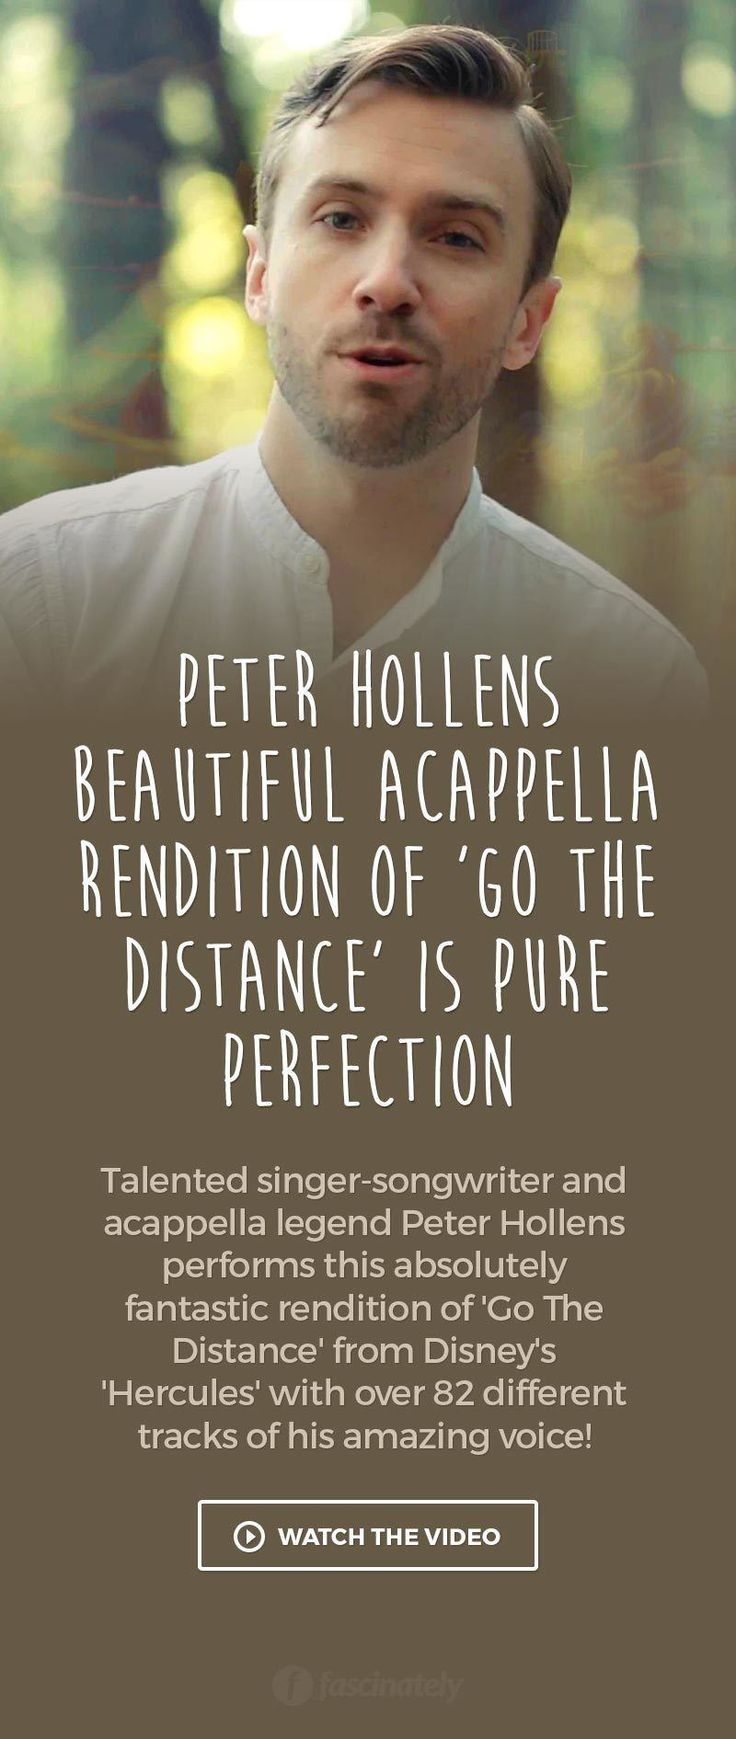 Peter Hollens Beautiful Acappella Rendition of 'Go The Distance' is Pure Perfection